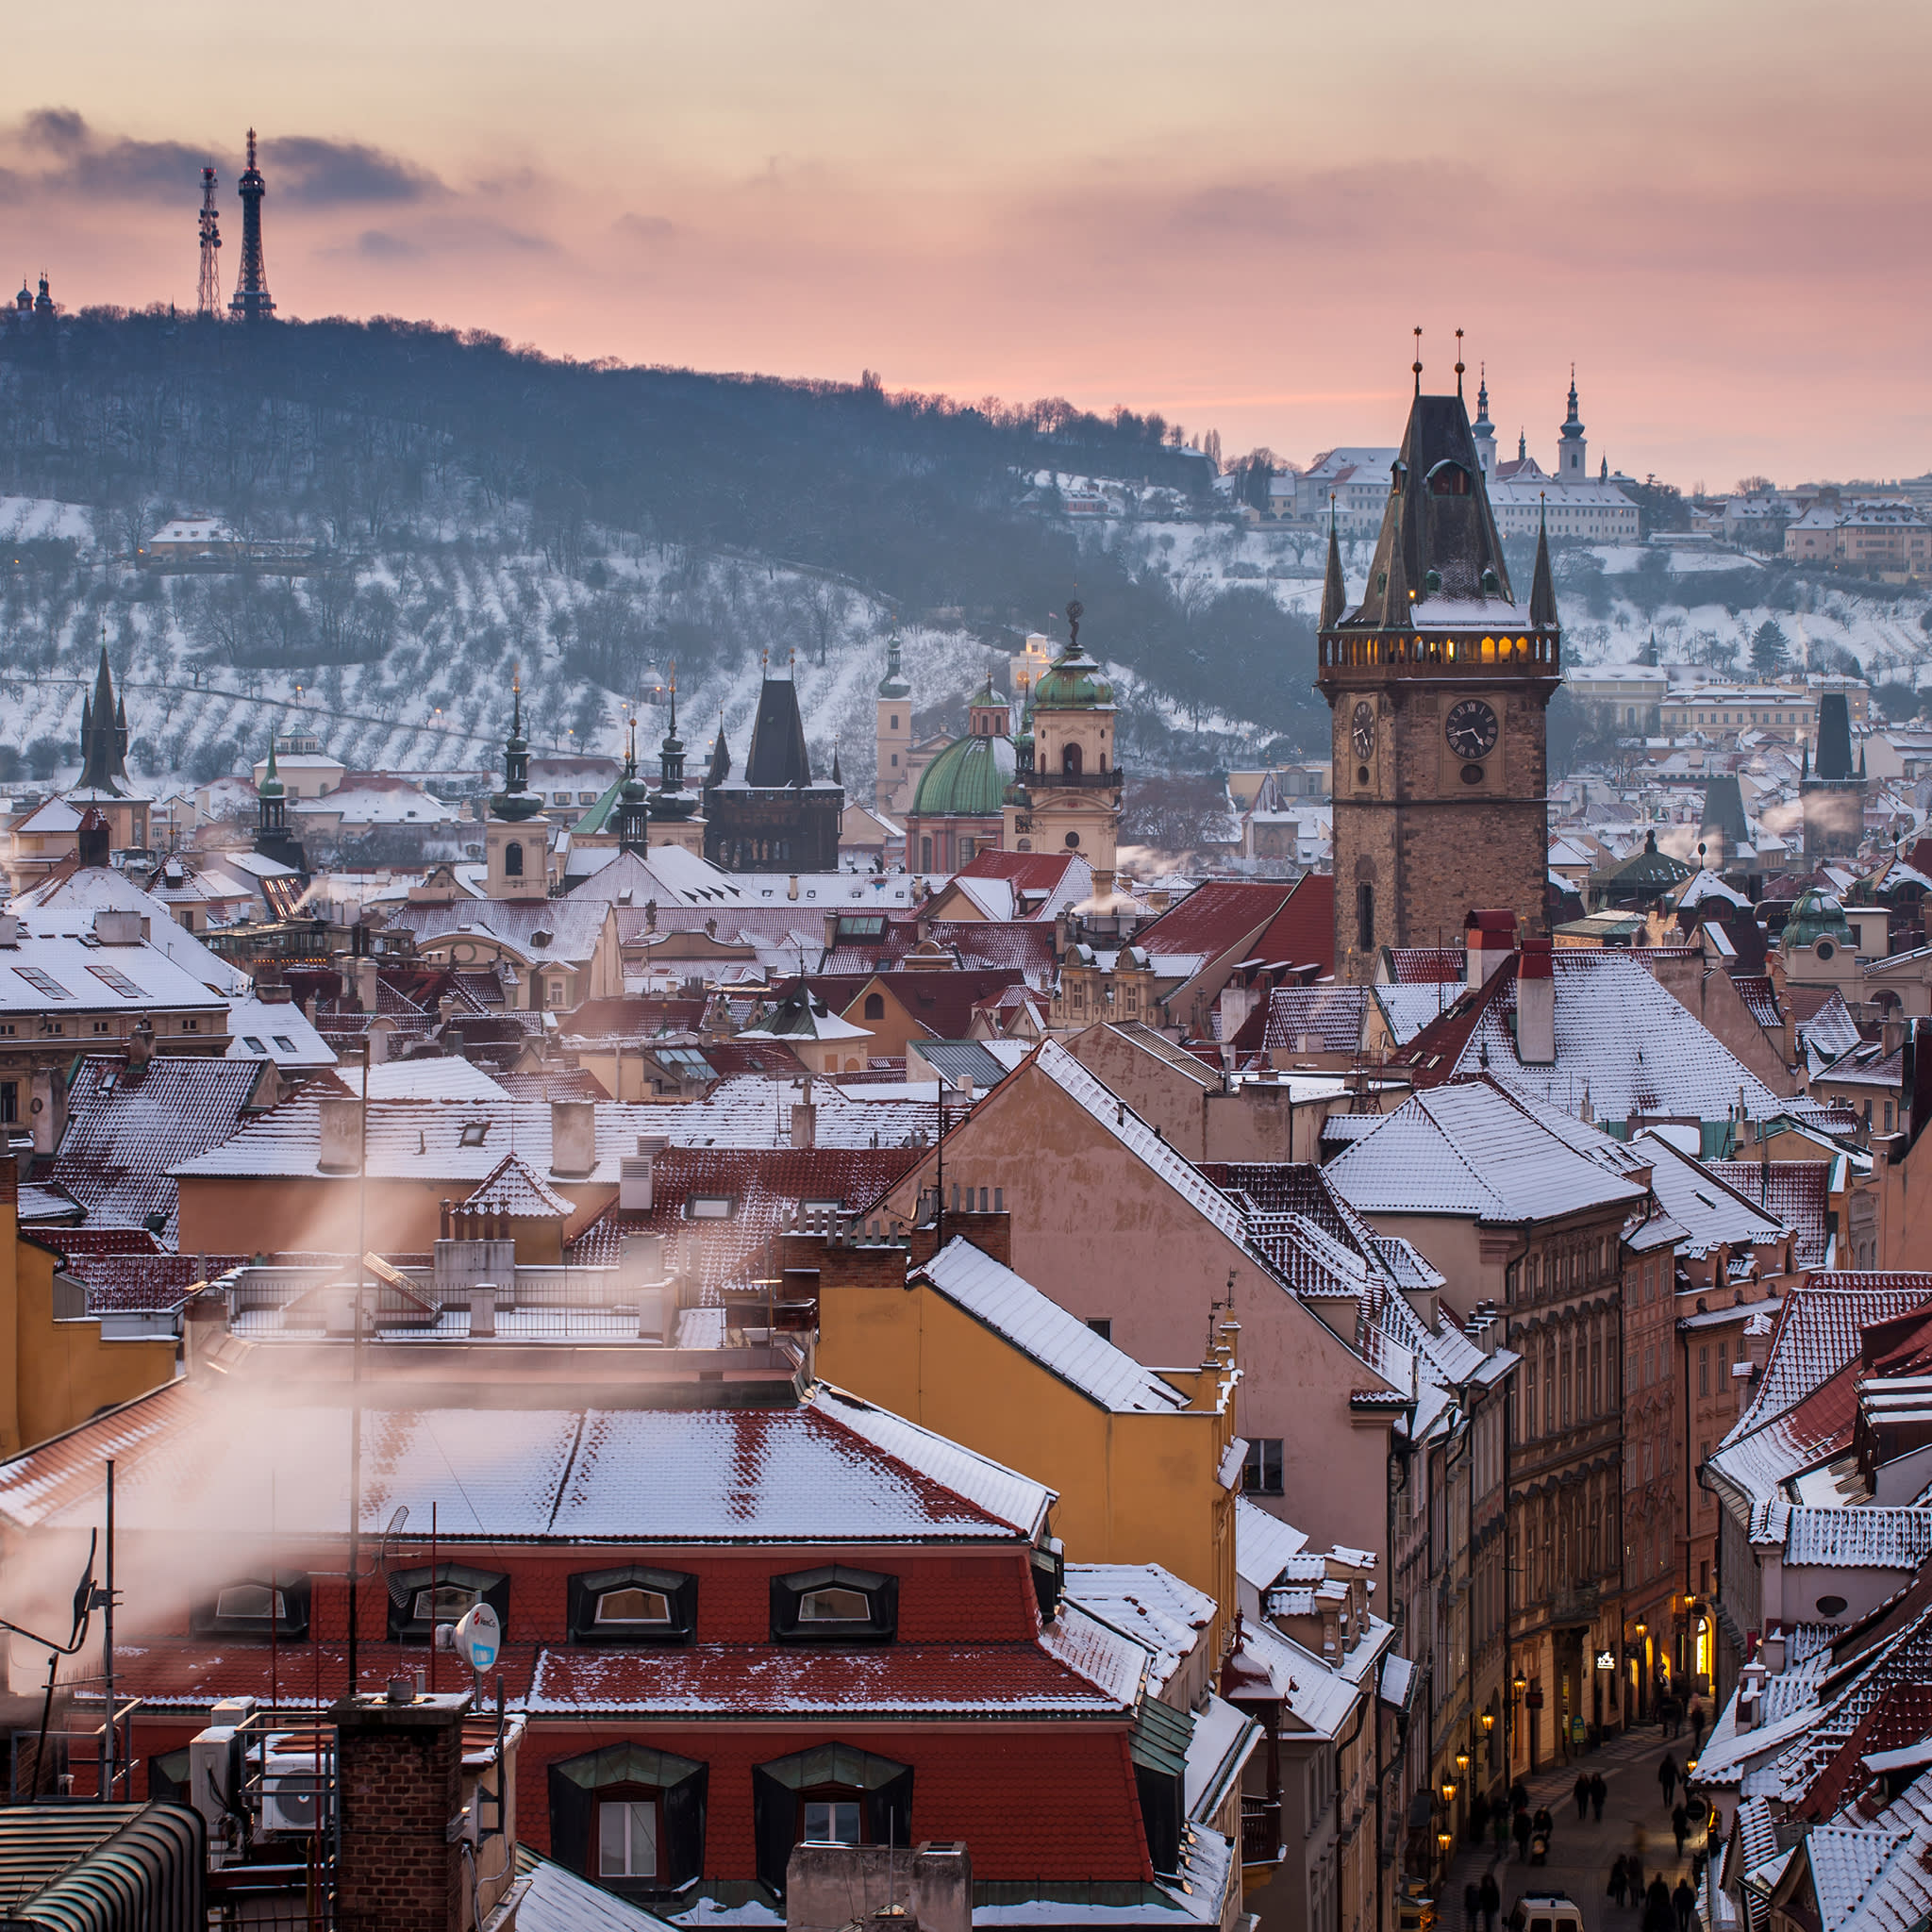 Prague in winter, with a view of the Church Of Our Lady Before Týn, the Old Town Hall and Prague Castle